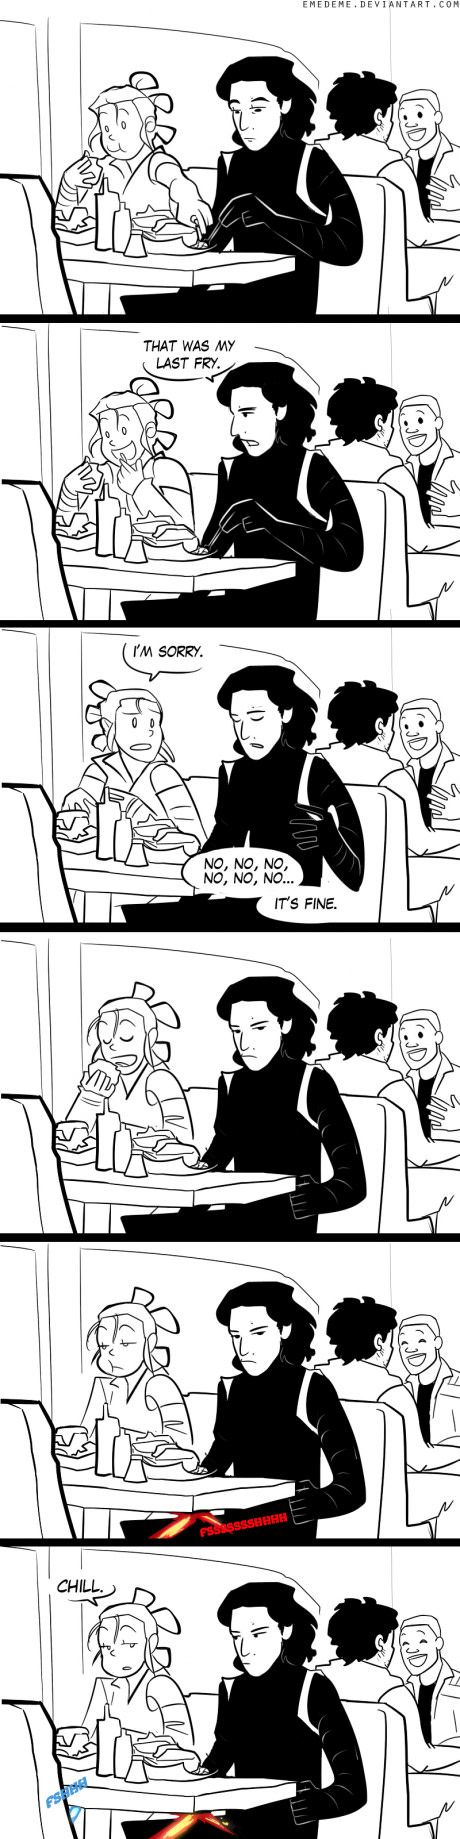 Kylo Ren and Ray date. I just realized that was Finn and Poe in the background! Long live the bromance!!